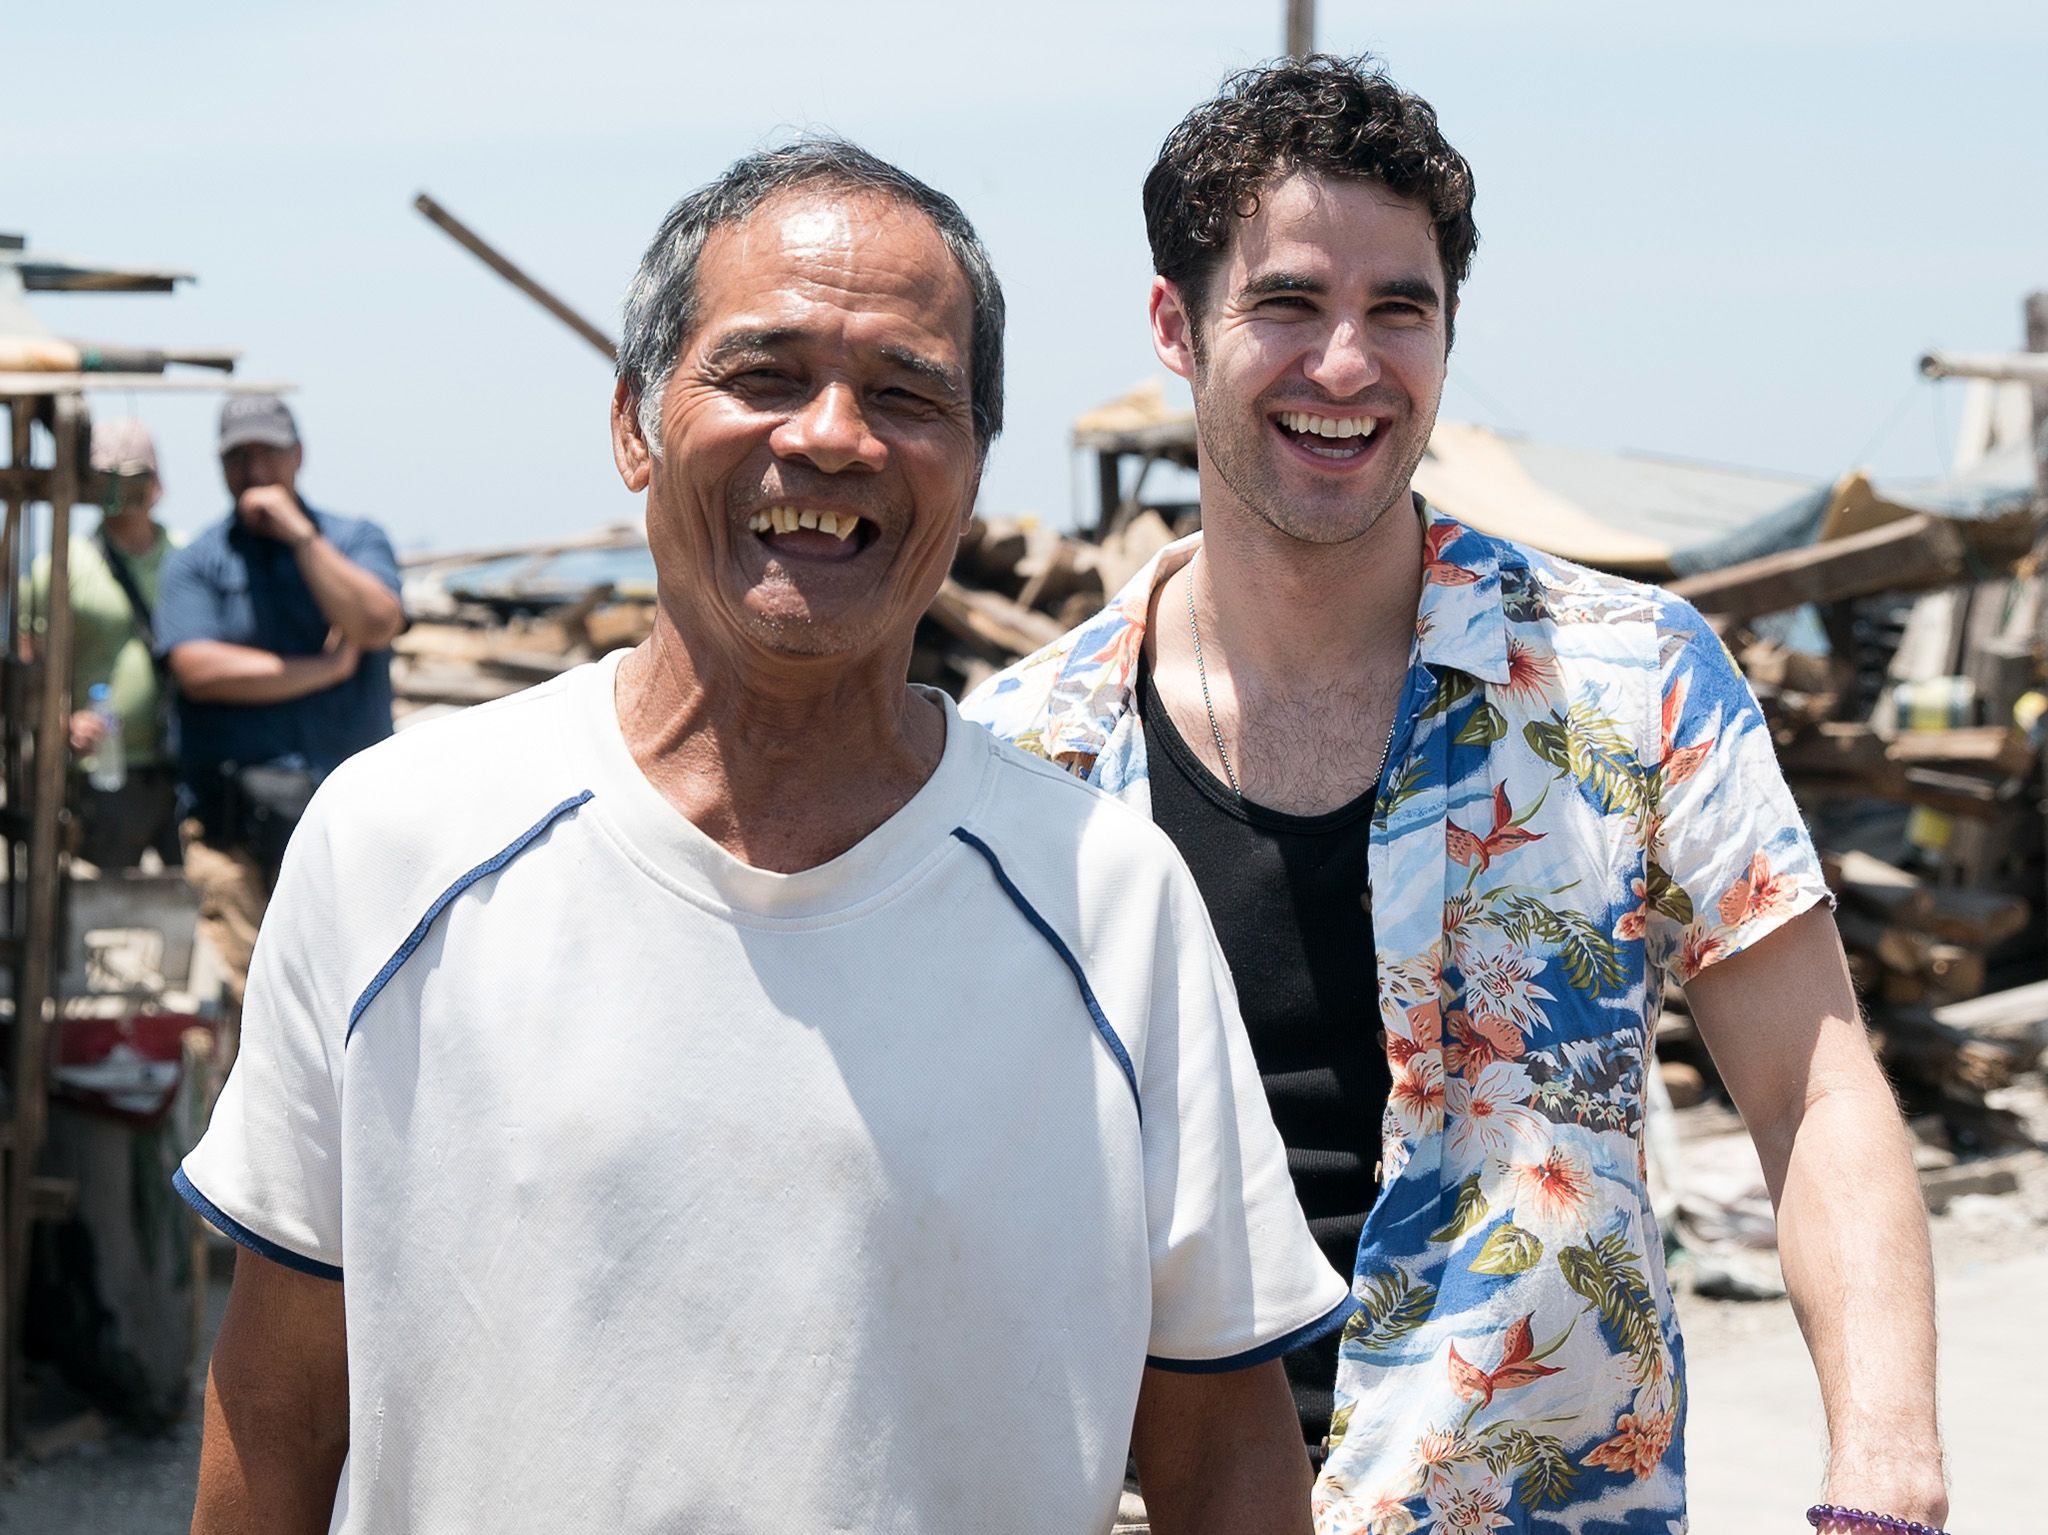 Daren Criss (right) jokes with a local fisherman. The World Bank estimates there are 25 to 27... [Photo of the day - سپتامبر 2019]